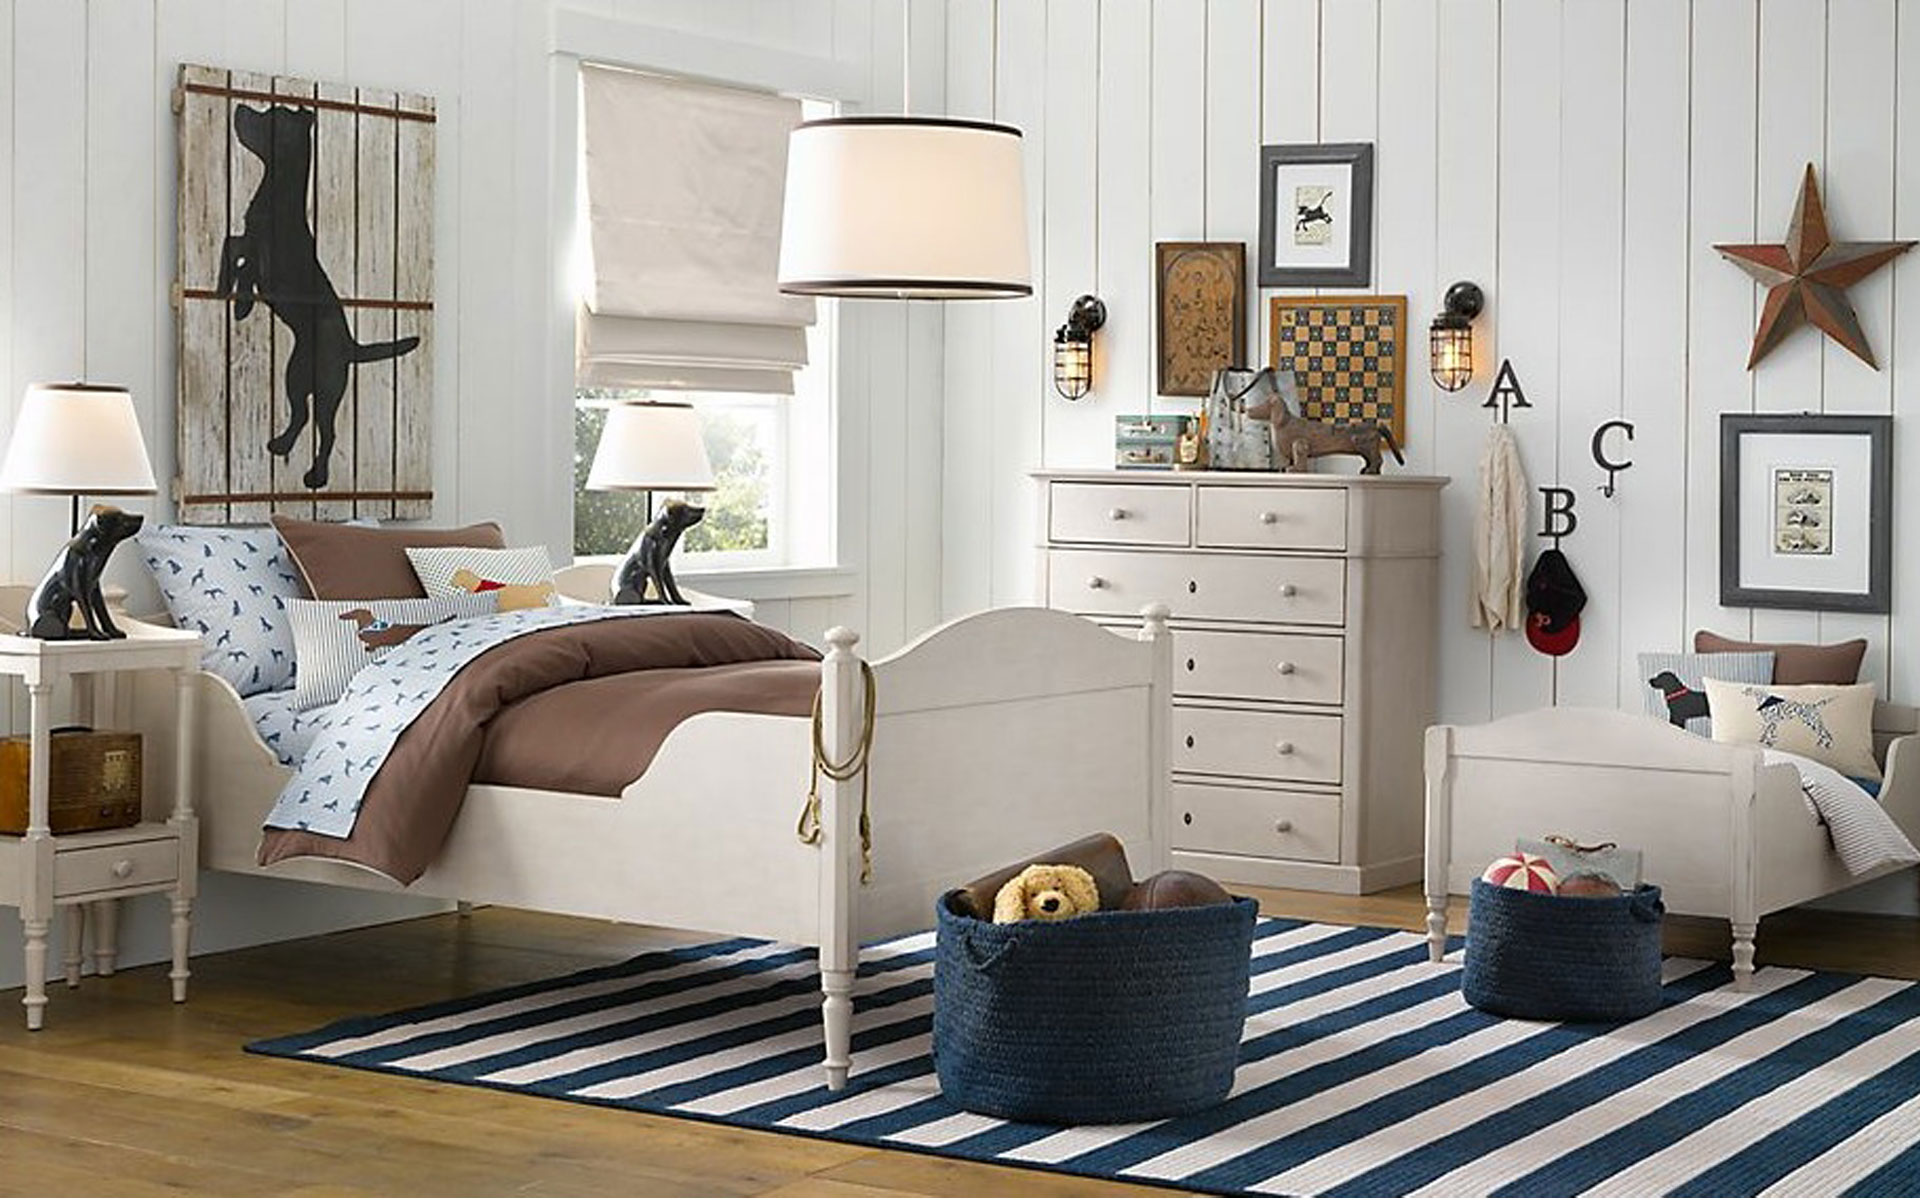 fascinating Vintage Boy Bedroom Part - 3: 30 Vintage Kids Rooms That Stand the Test of Time